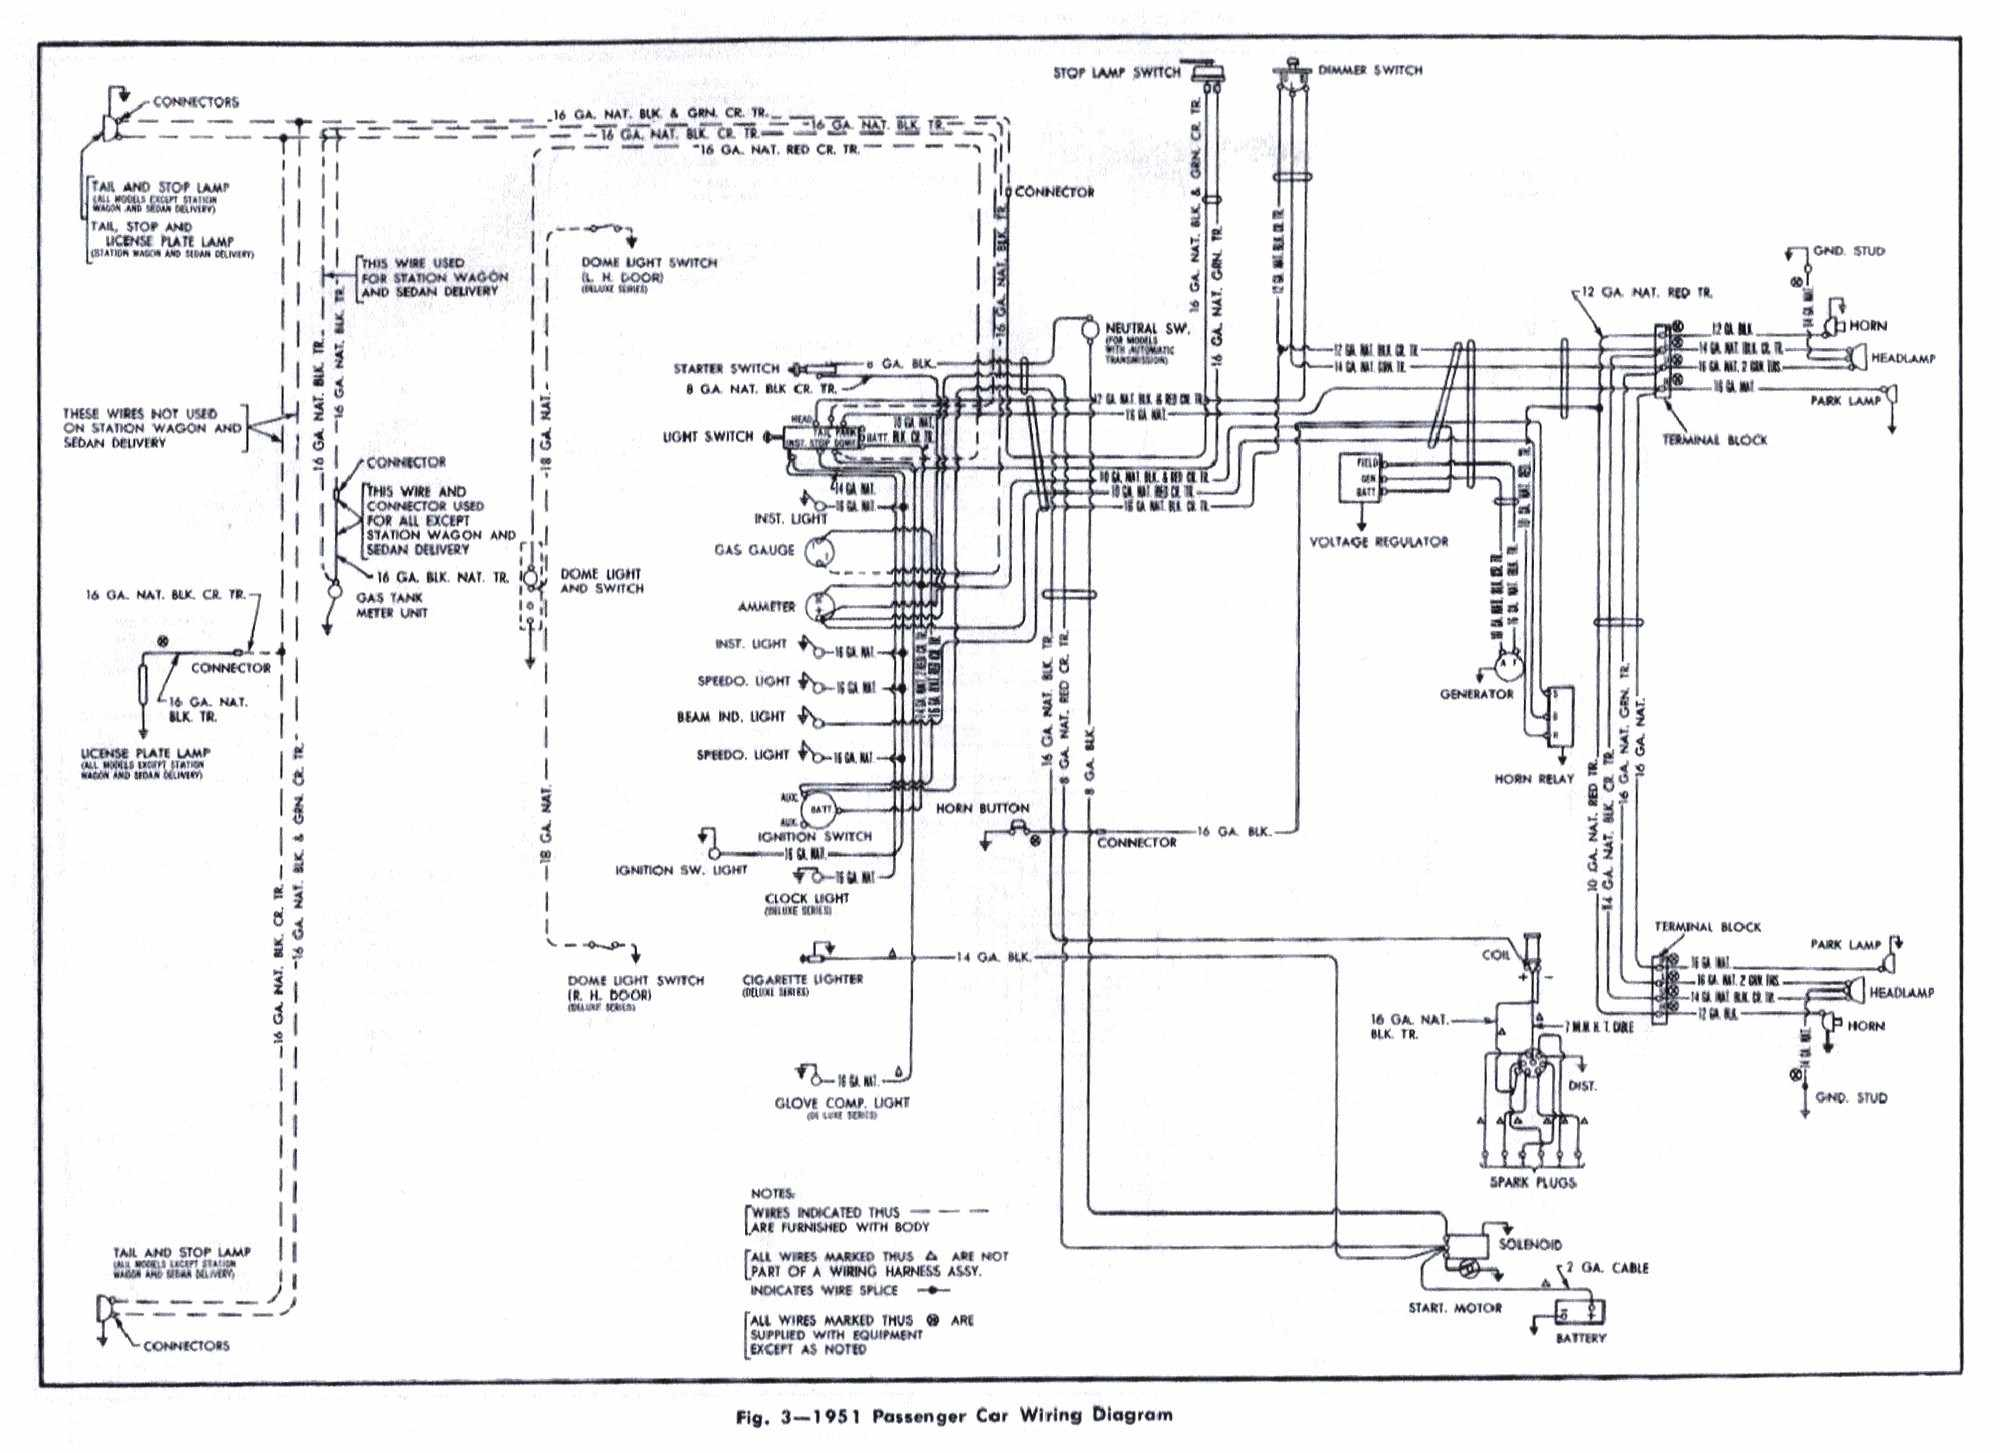 Toyota Forklift Ignition Wiring Diagram 1985. Toyota. Auto